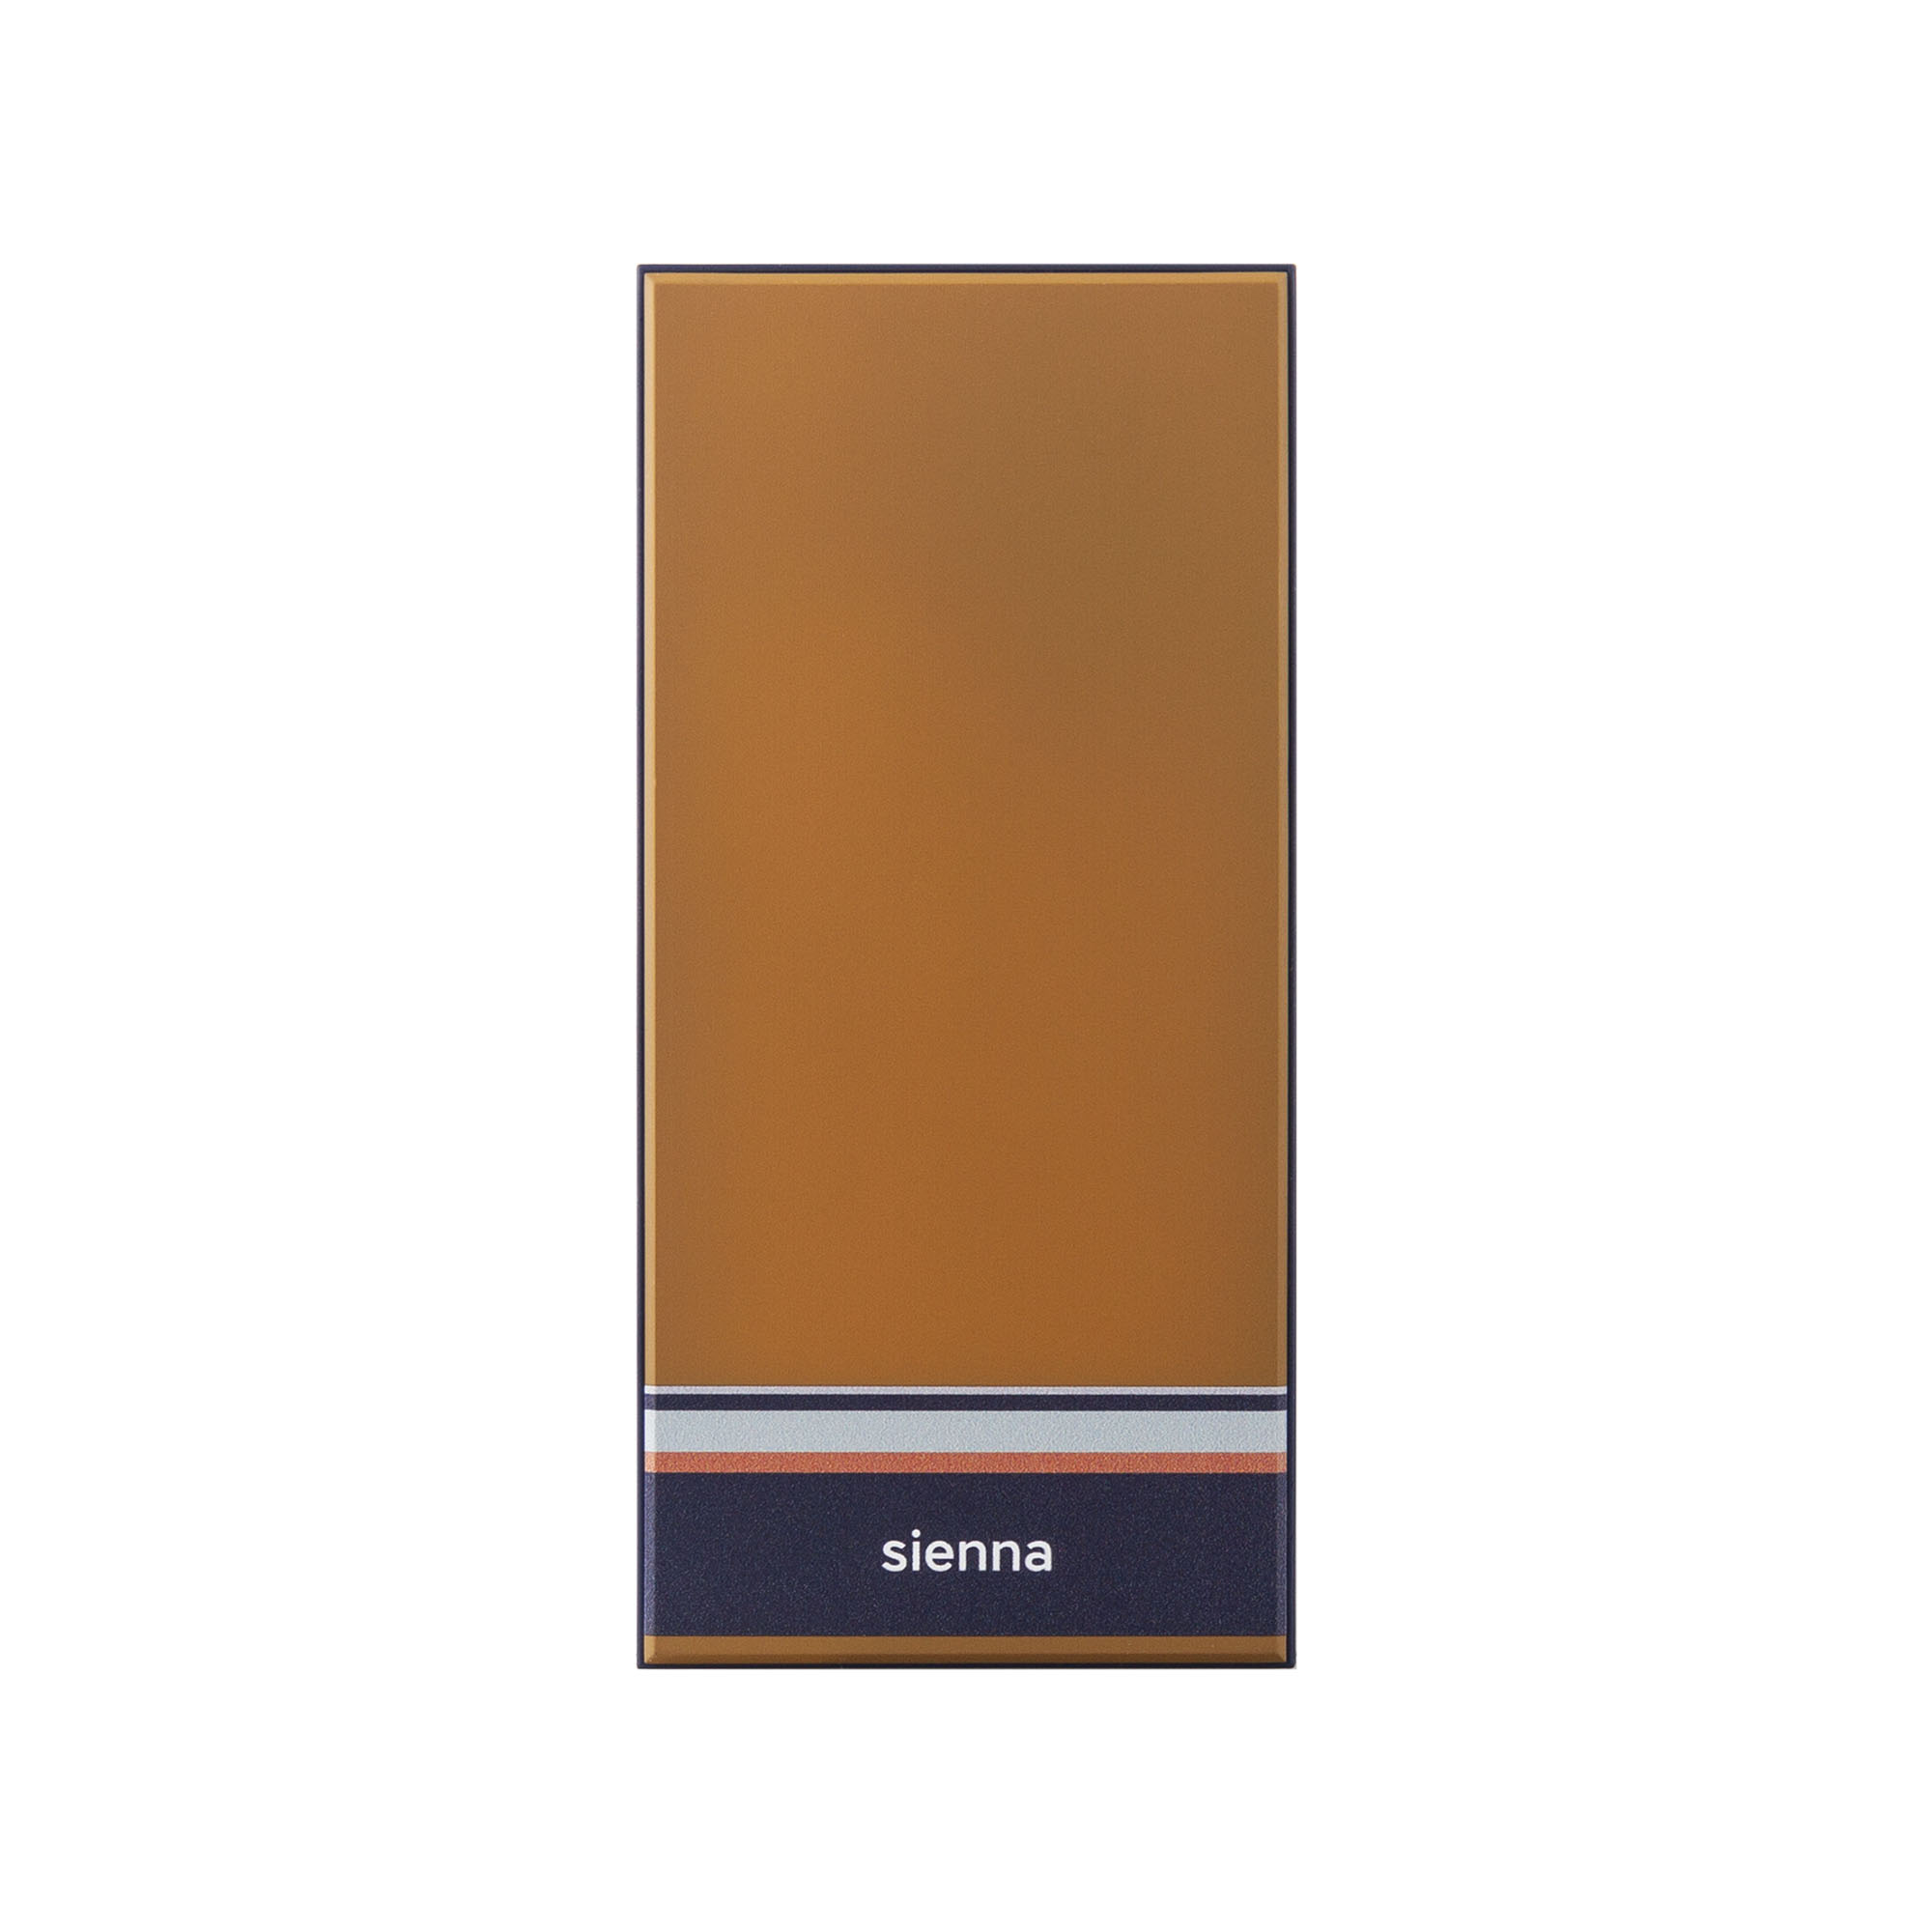 Rombica NEO ARIA SIENNA